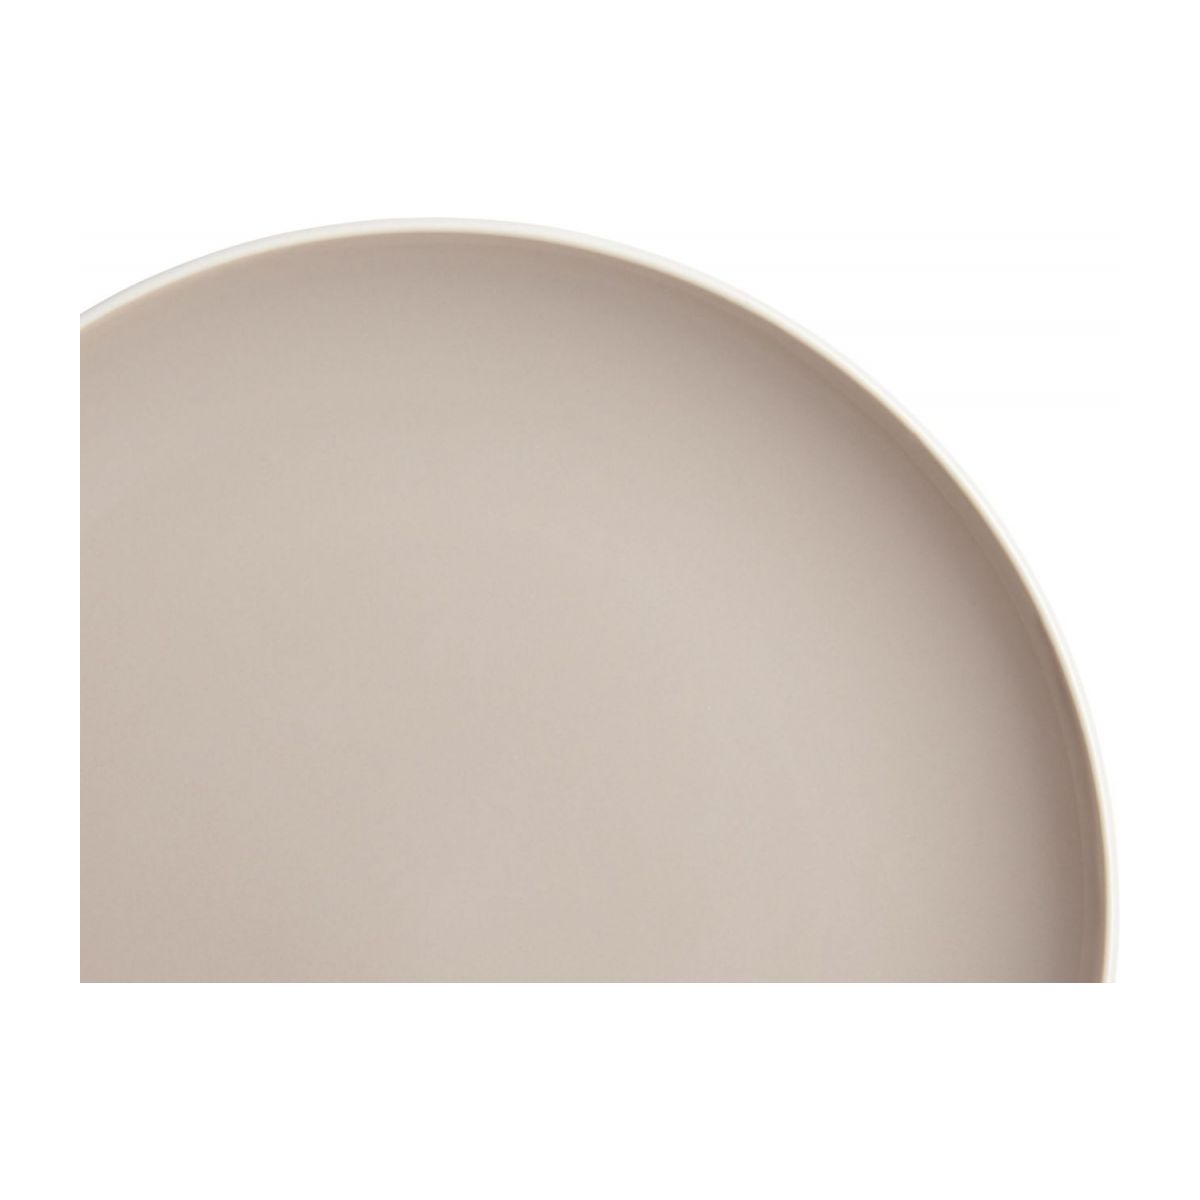 Dessert plate made of sandstone, grey n°3